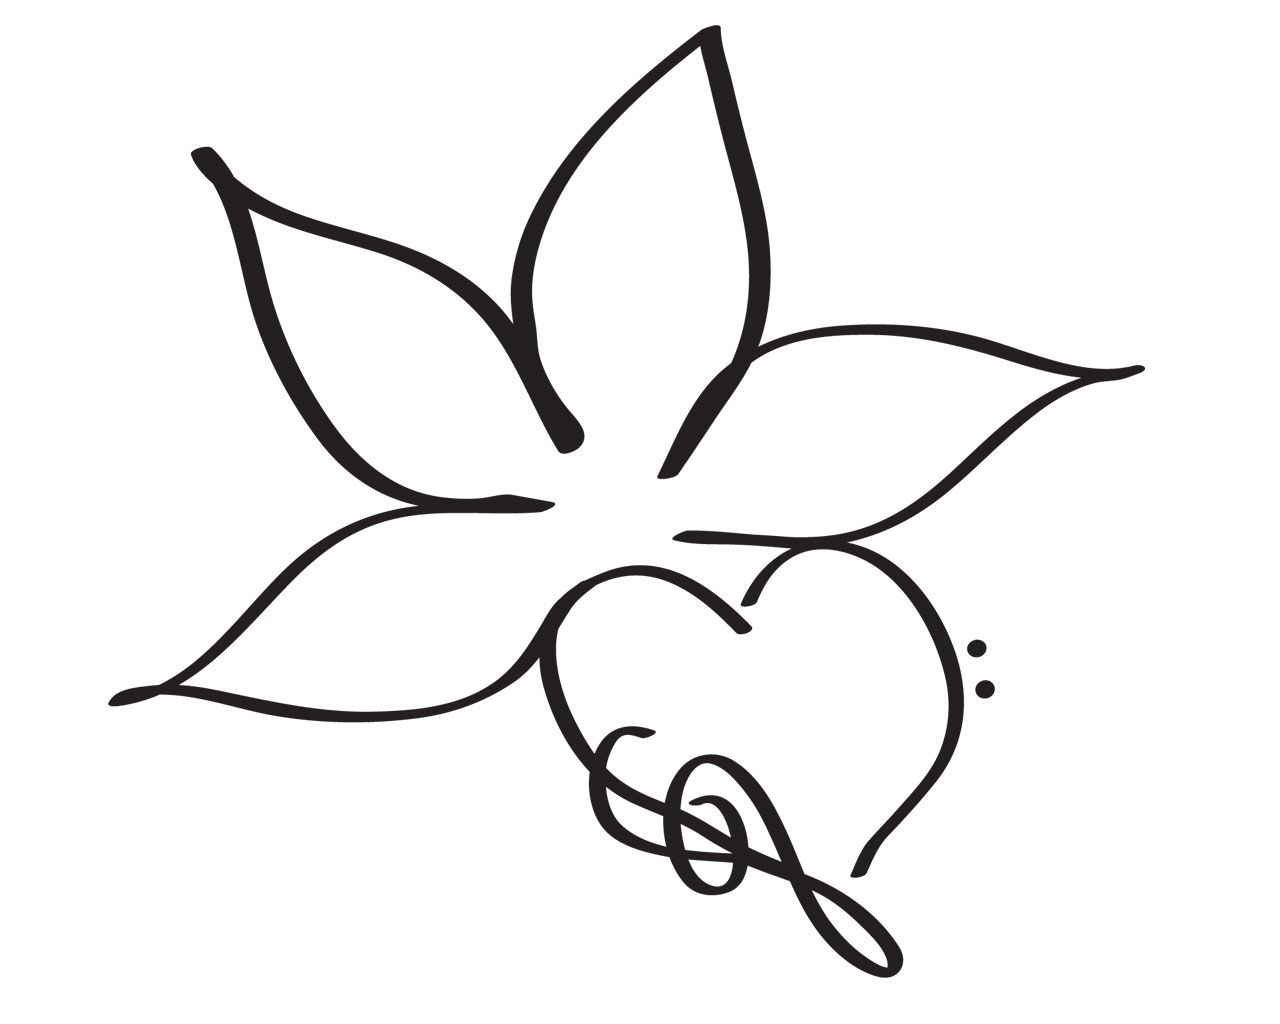 Simple Flower Drawings - ClipArt Best